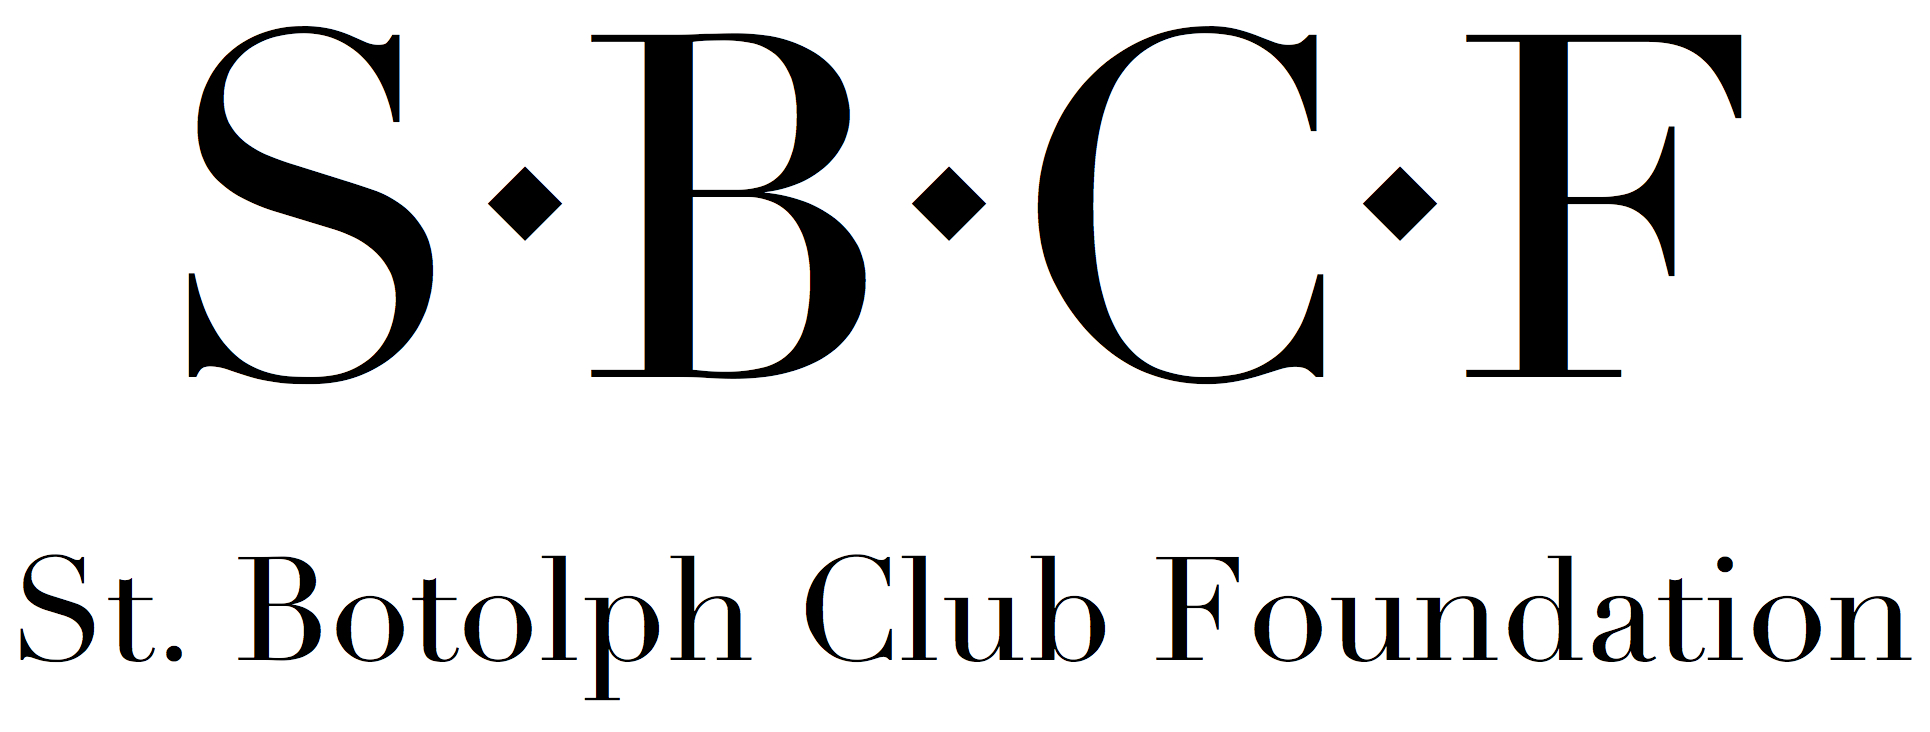 St. Botolph Club Foundation